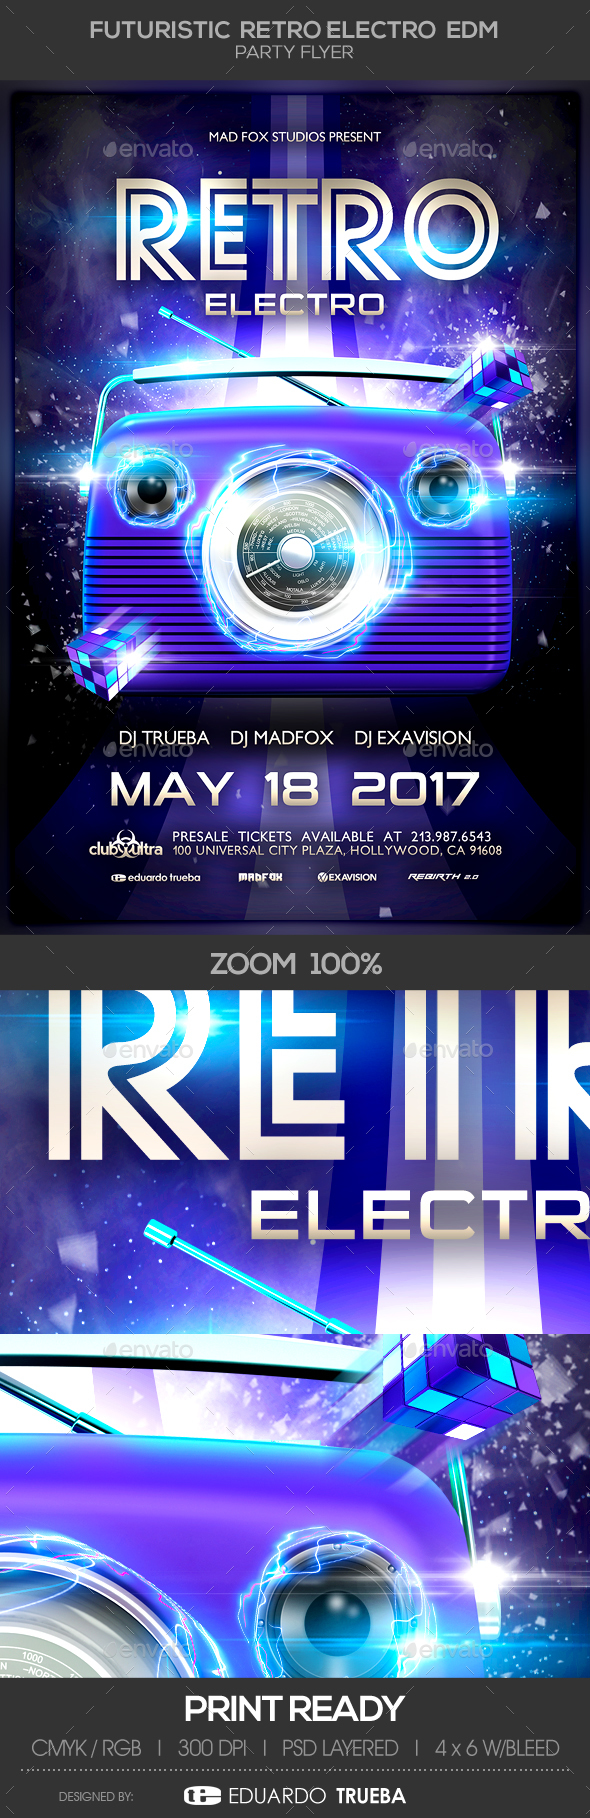 Futuristic Retro Electro EDM Party Flyer - Clubs & Parties Events